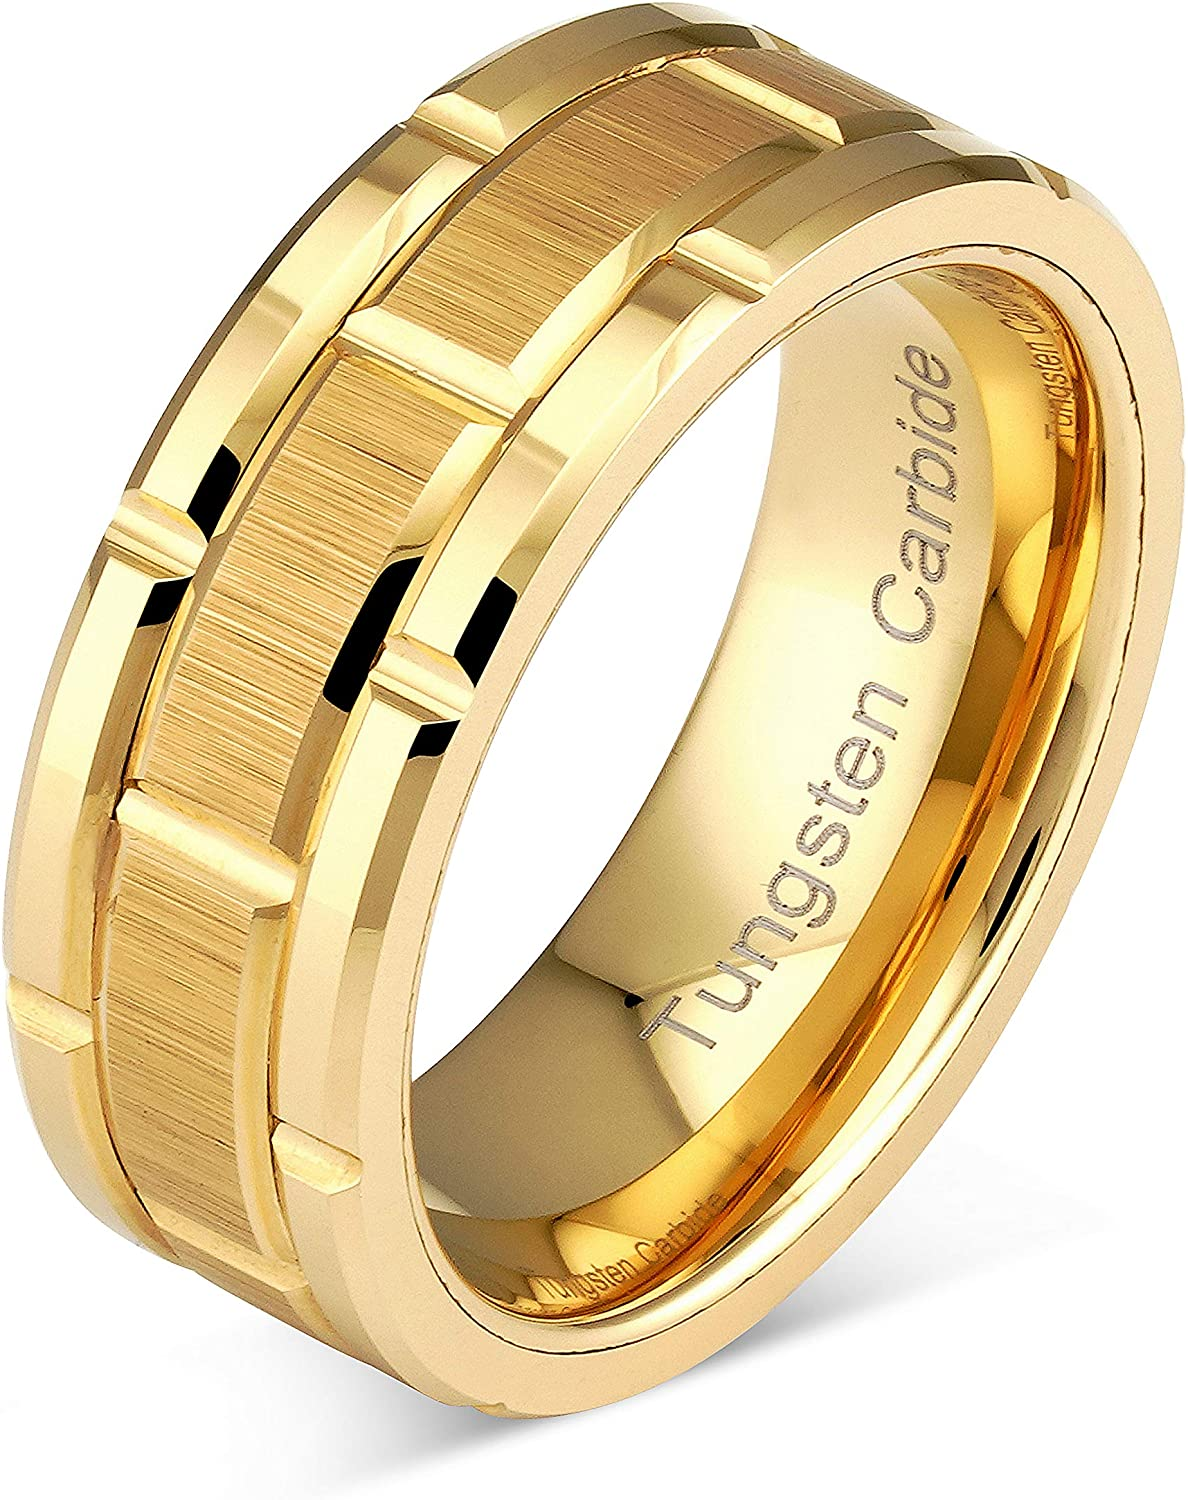 Engraved Personalized Tungsten Ring For Men Women Wedding Band Gold Brick Pattern Size 6-16